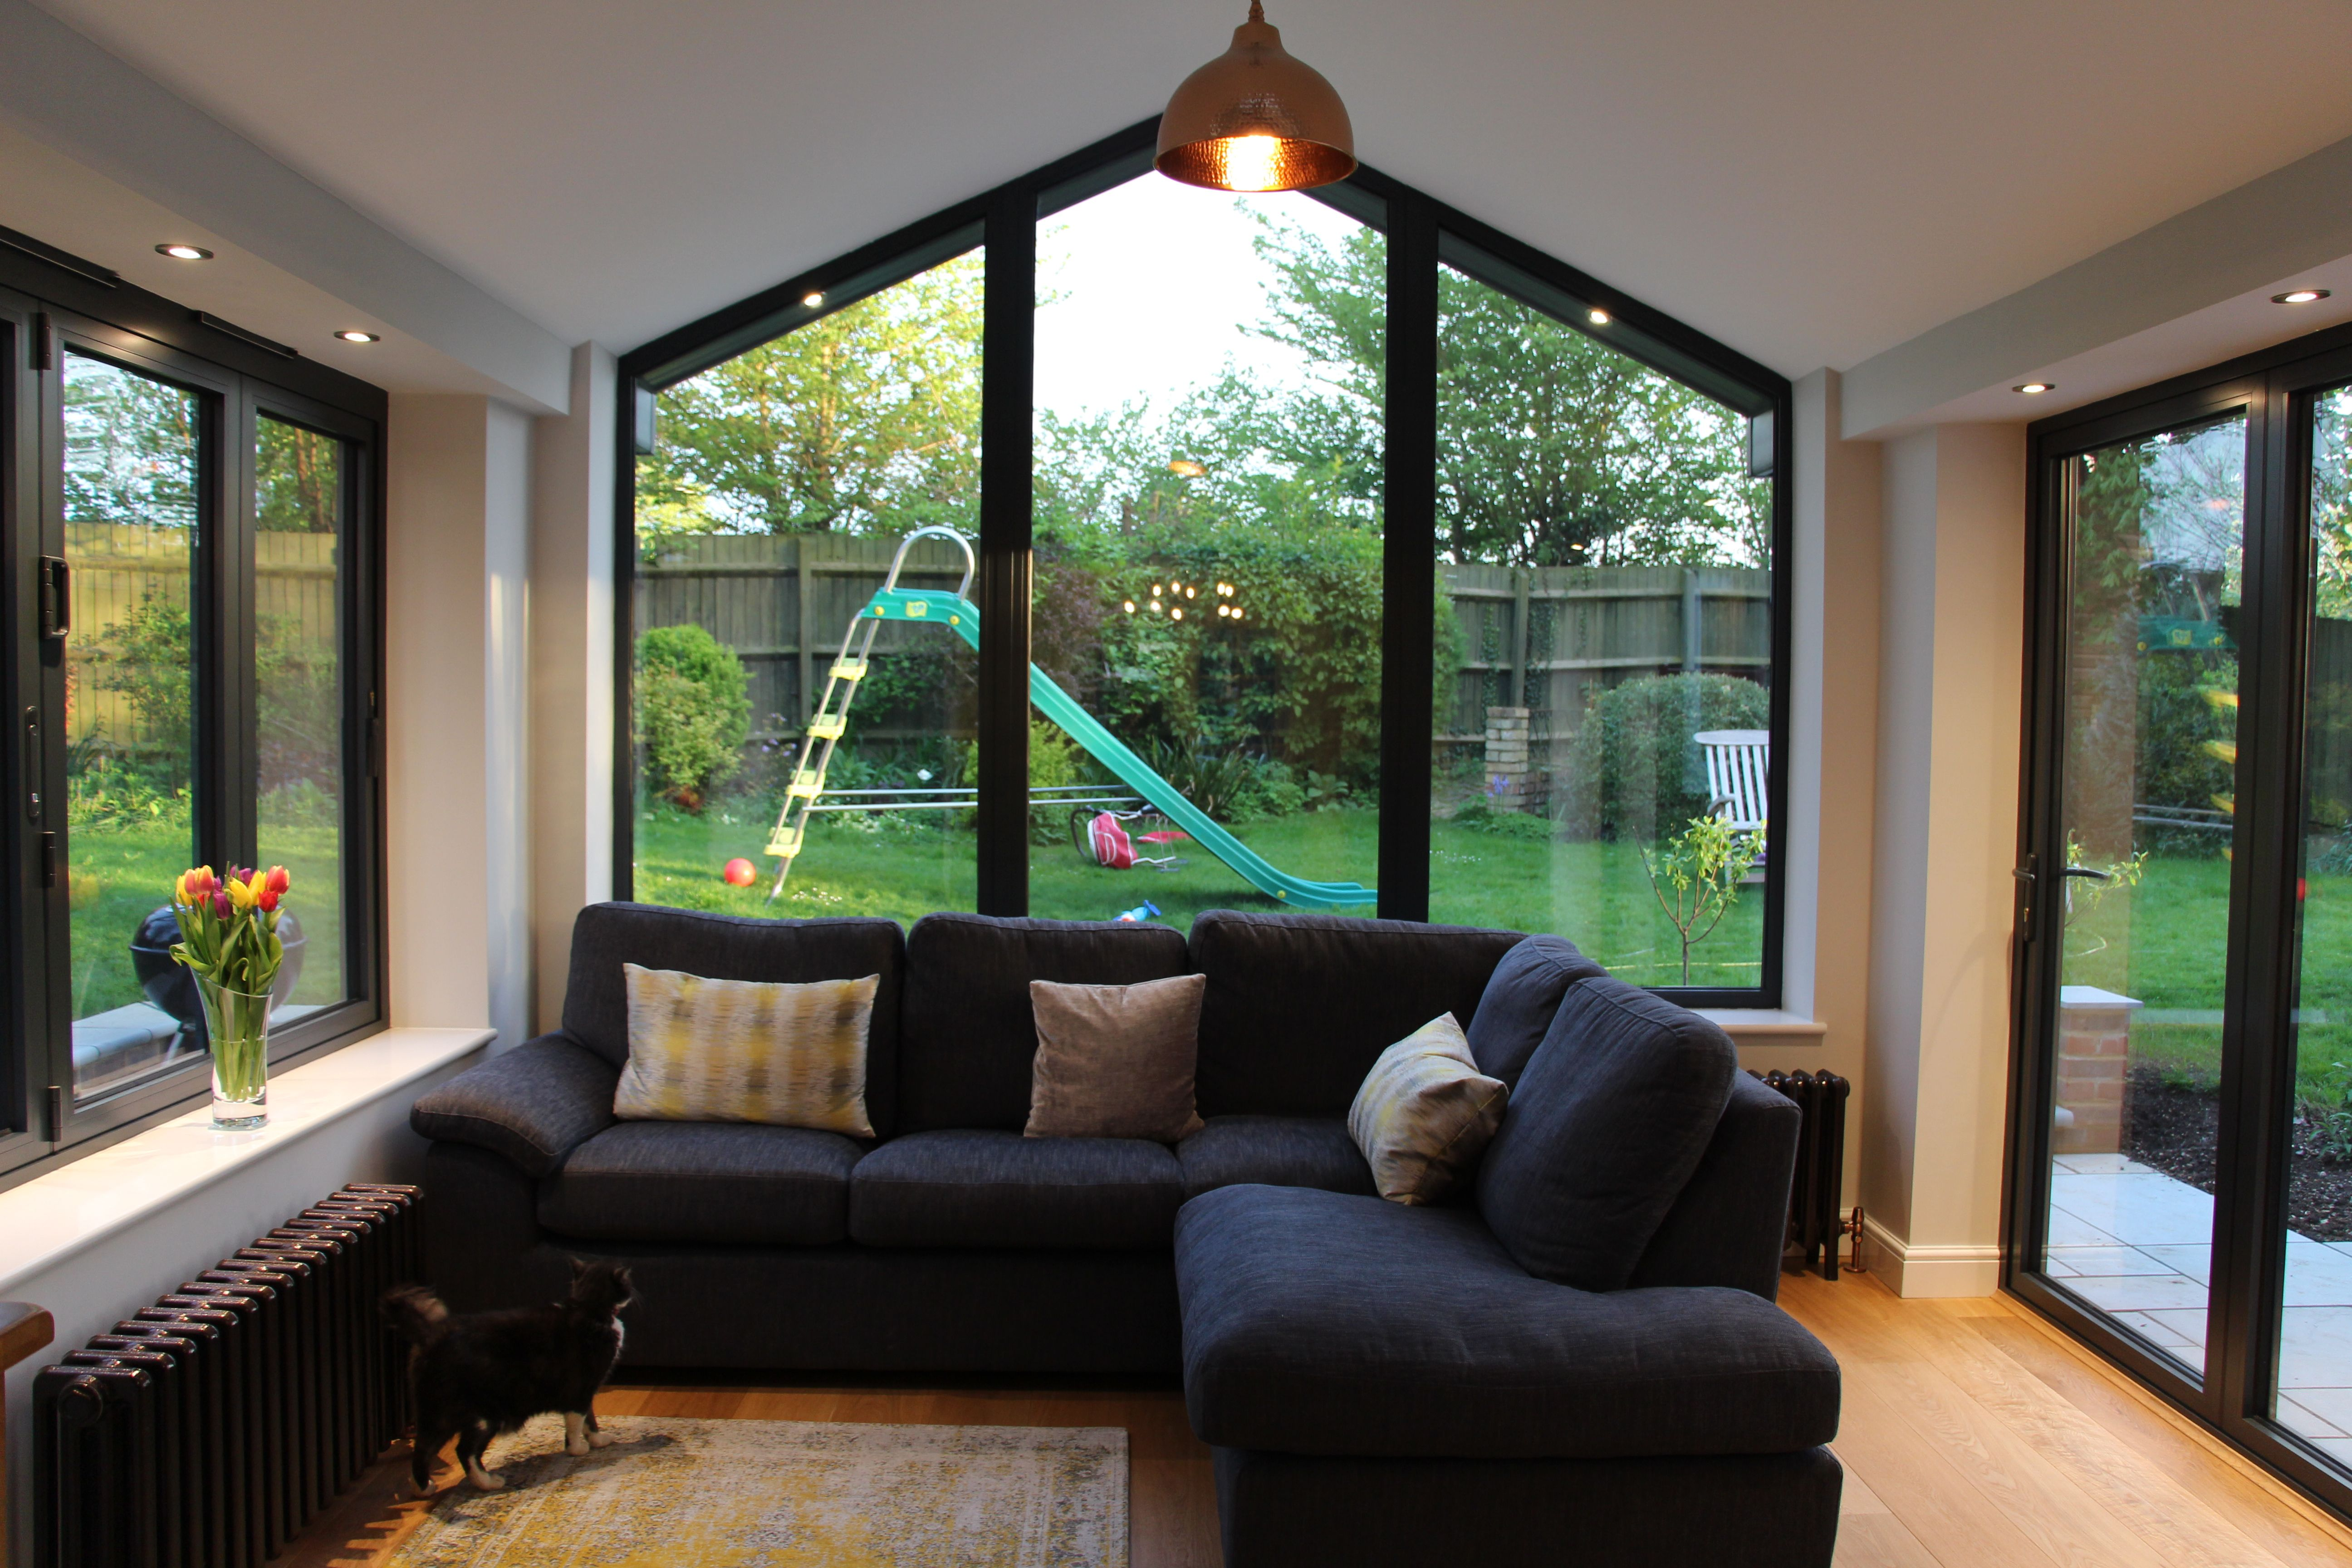 Gable Ended Conservatory Three Sided View Of The Garden Four If You Count The Beautiful House Extension Design Conservatory Interior Garden Room Extensions